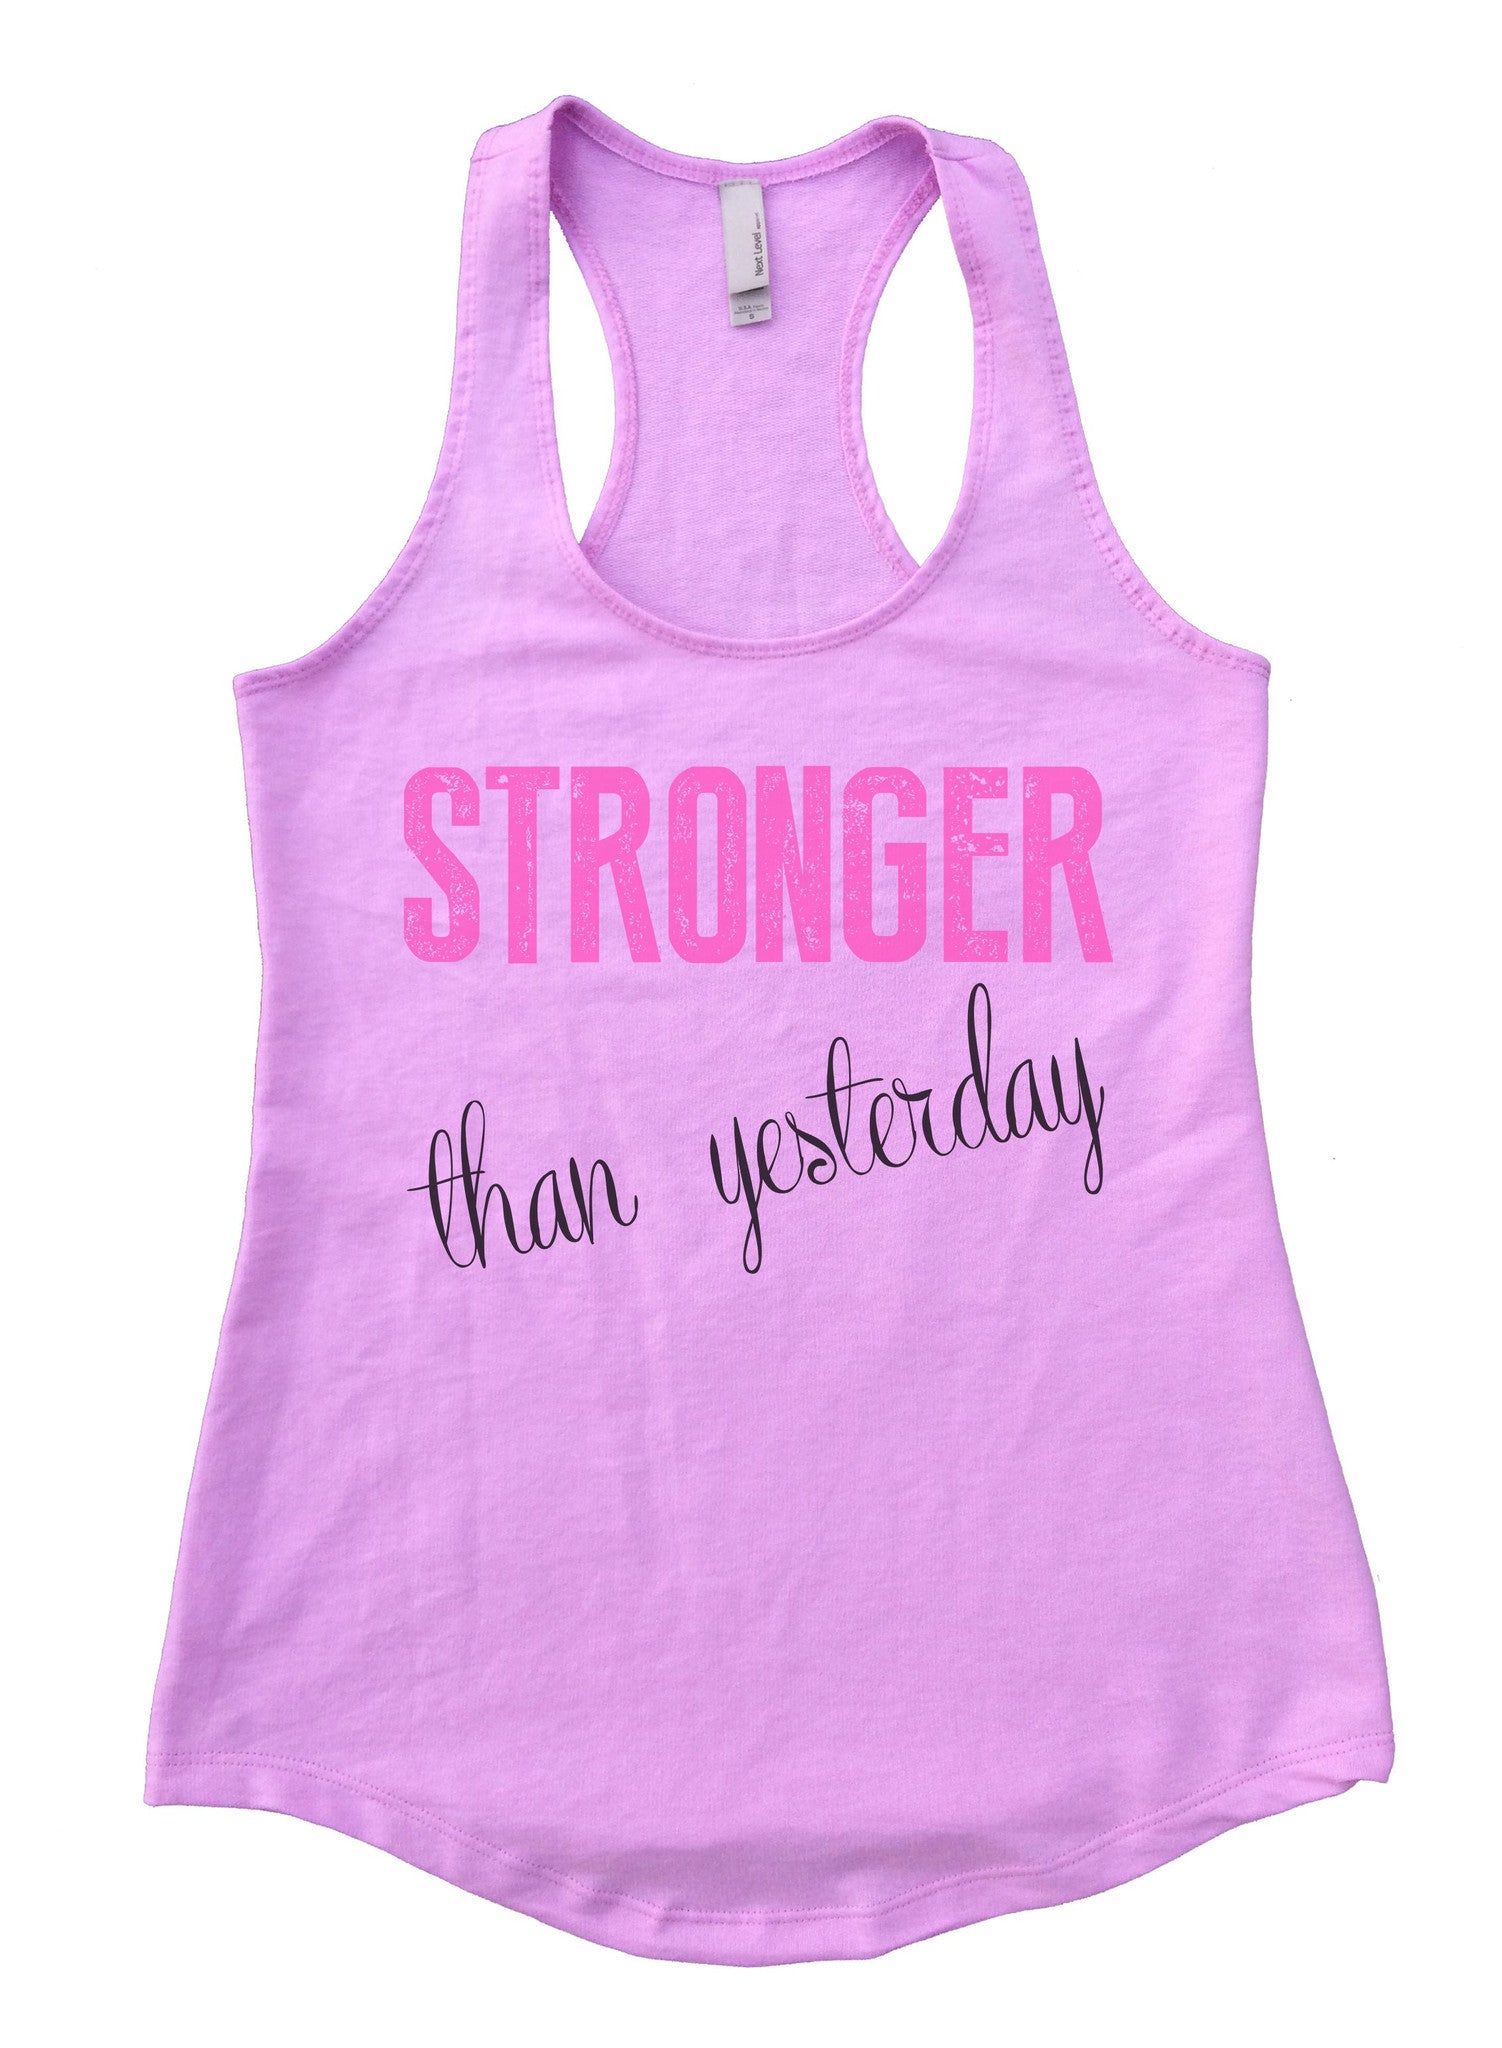 Stronger Than Yesterday Womens Workout Tank Top F768 - Funny Shirts Tank Tops Burnouts and Triblends  - 4